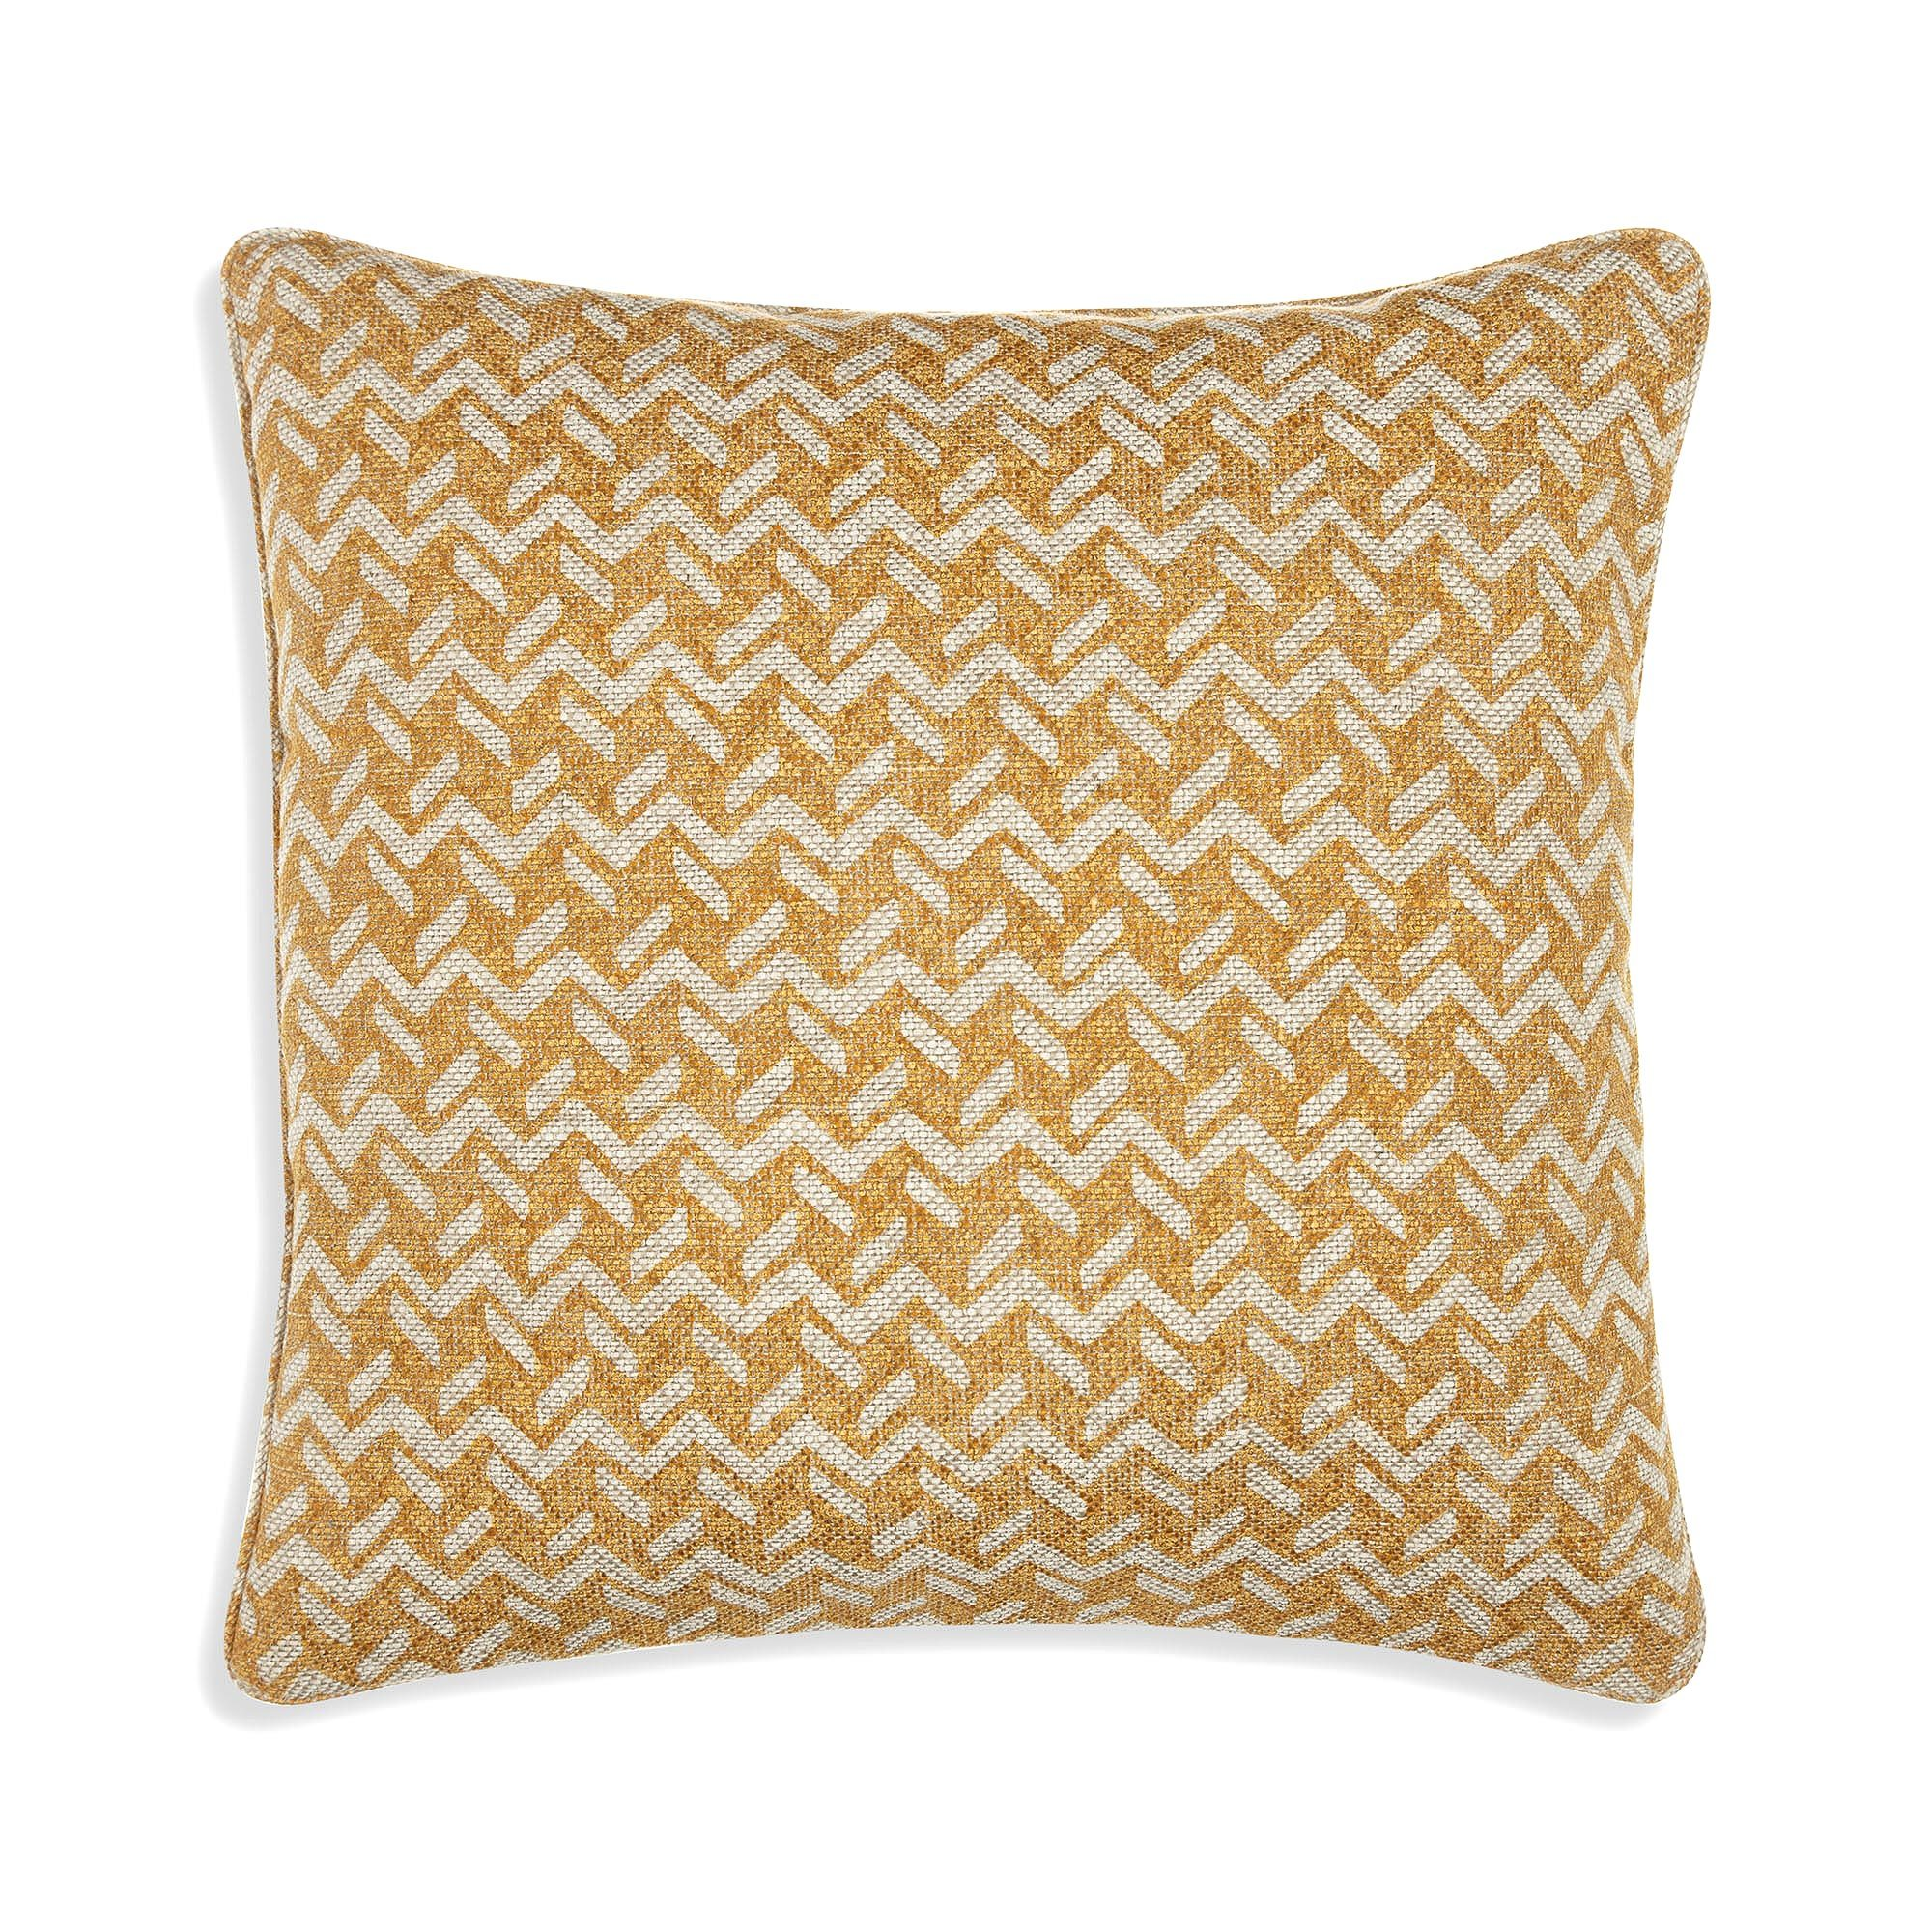 Small Square Cushion in Yellow Chiltern